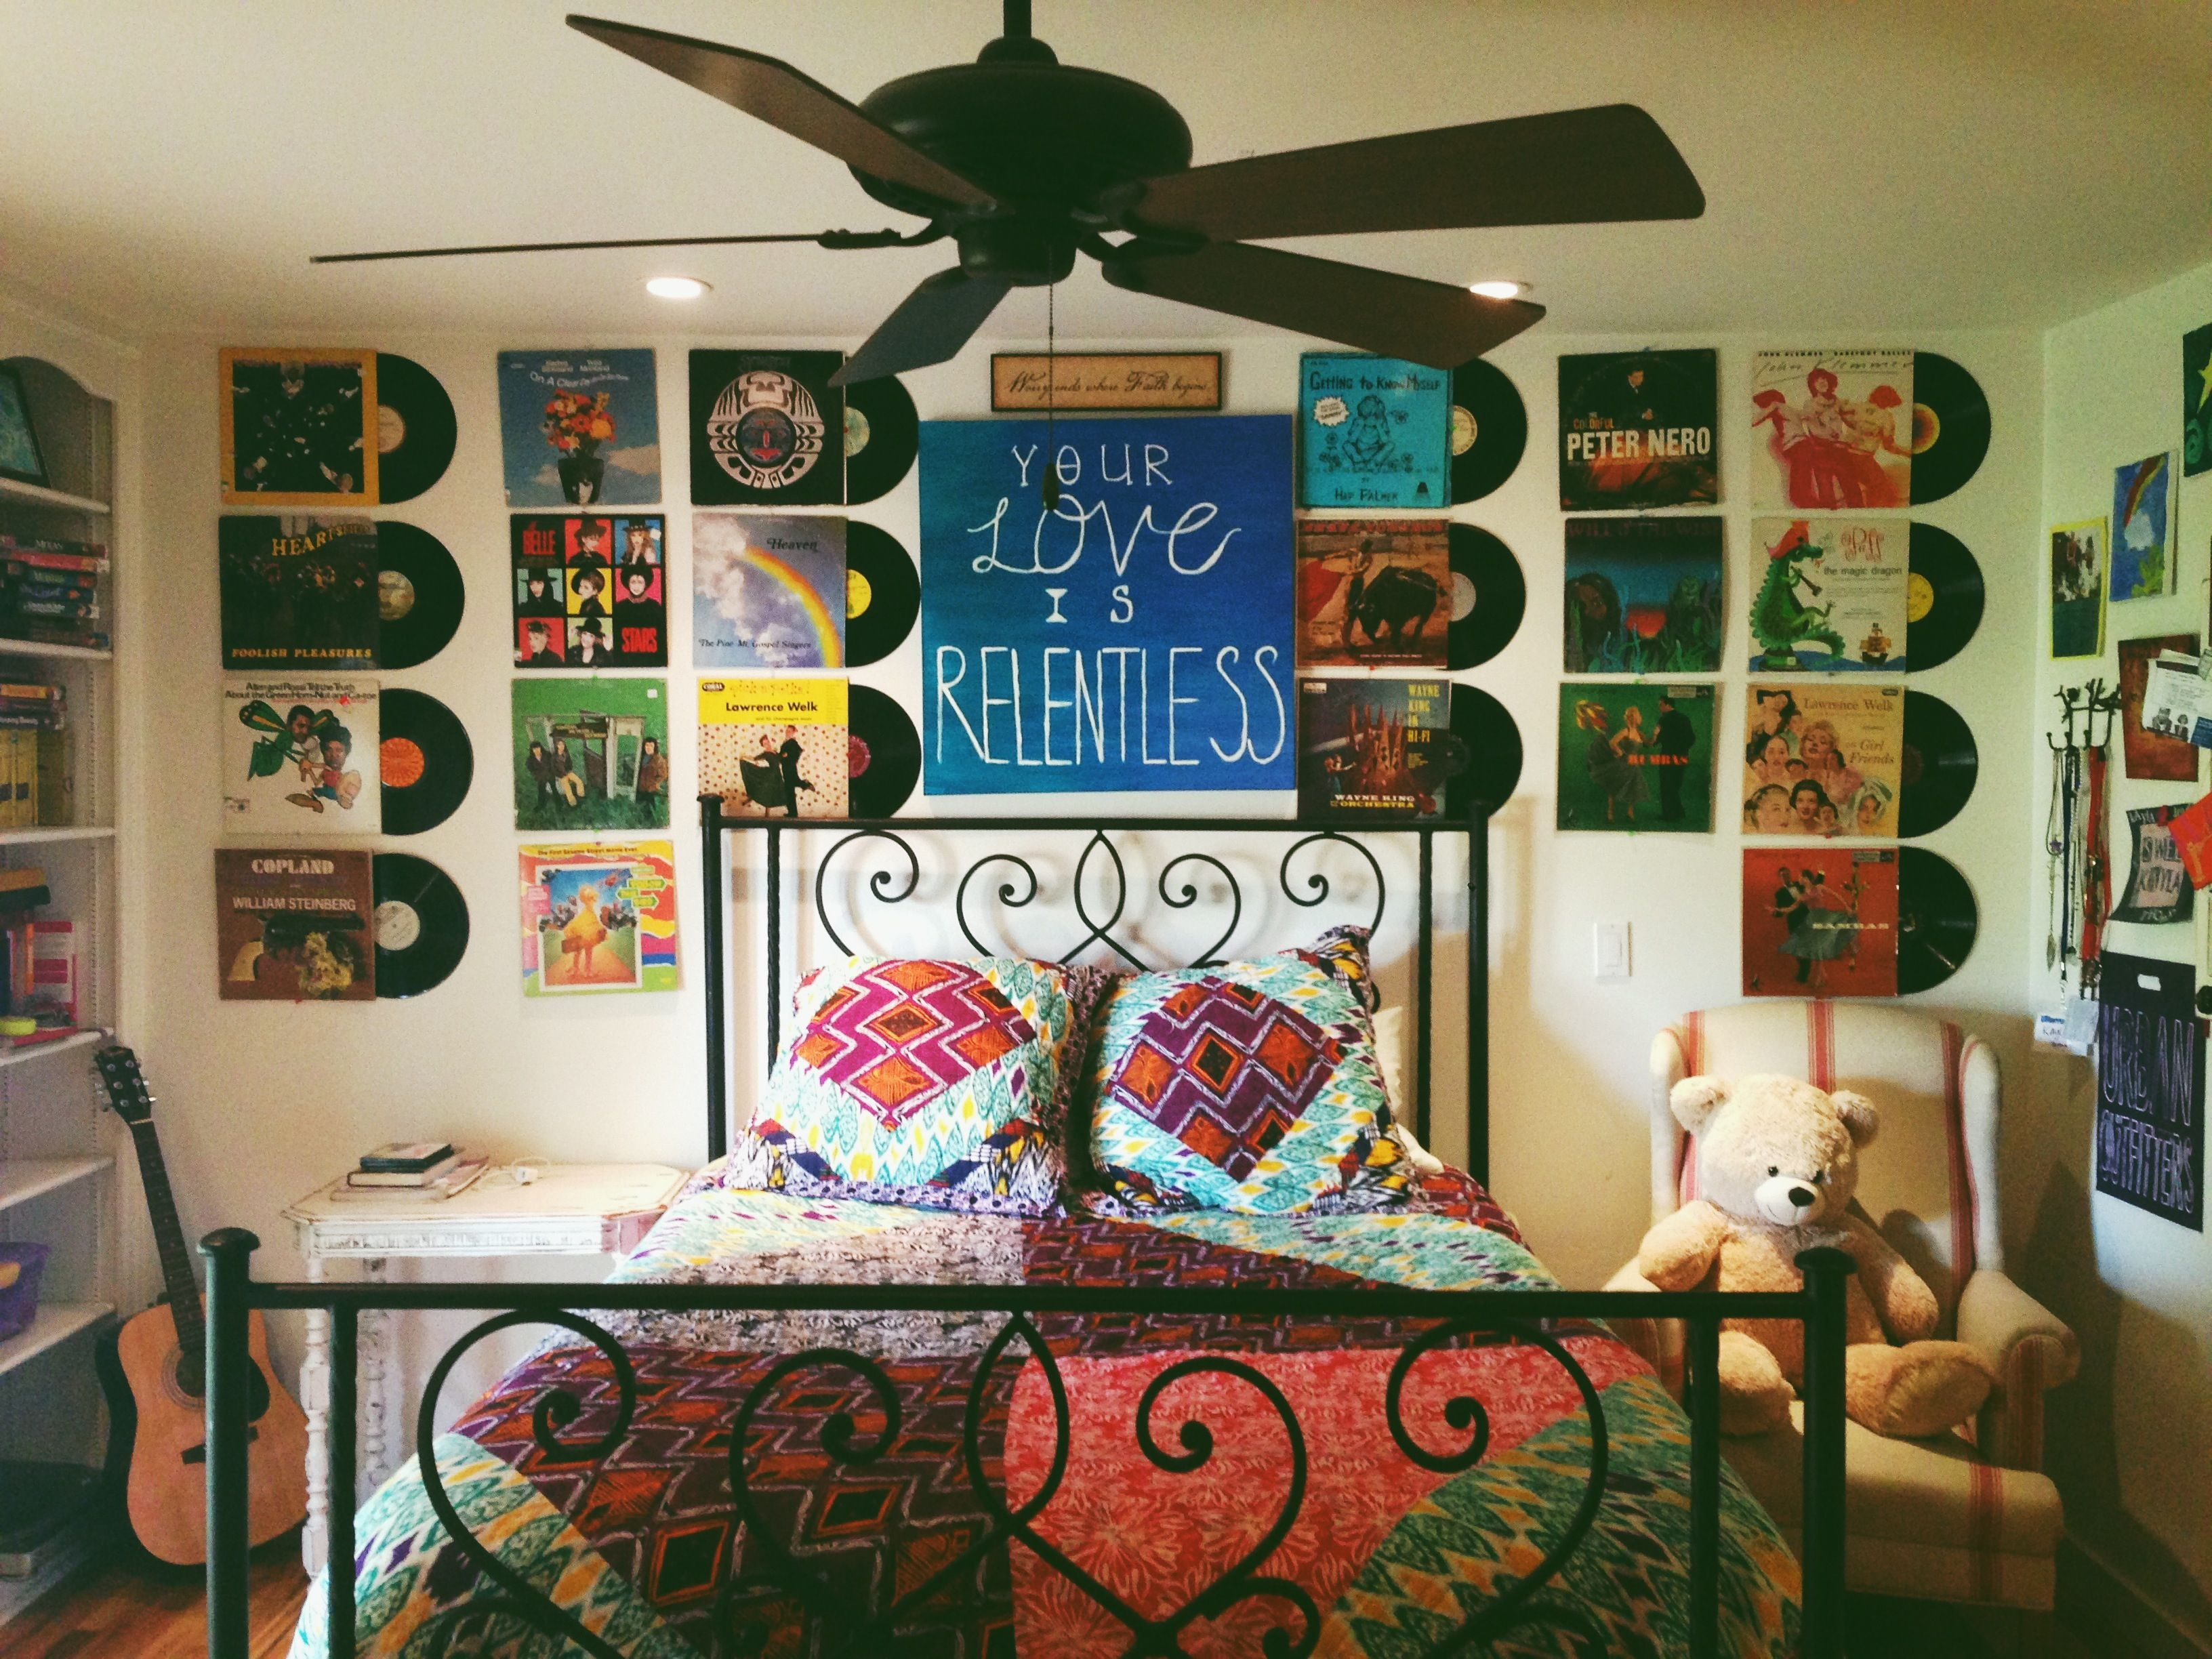 Hanging Records On Wall 24 best album cover decor images on pinterest | album covers